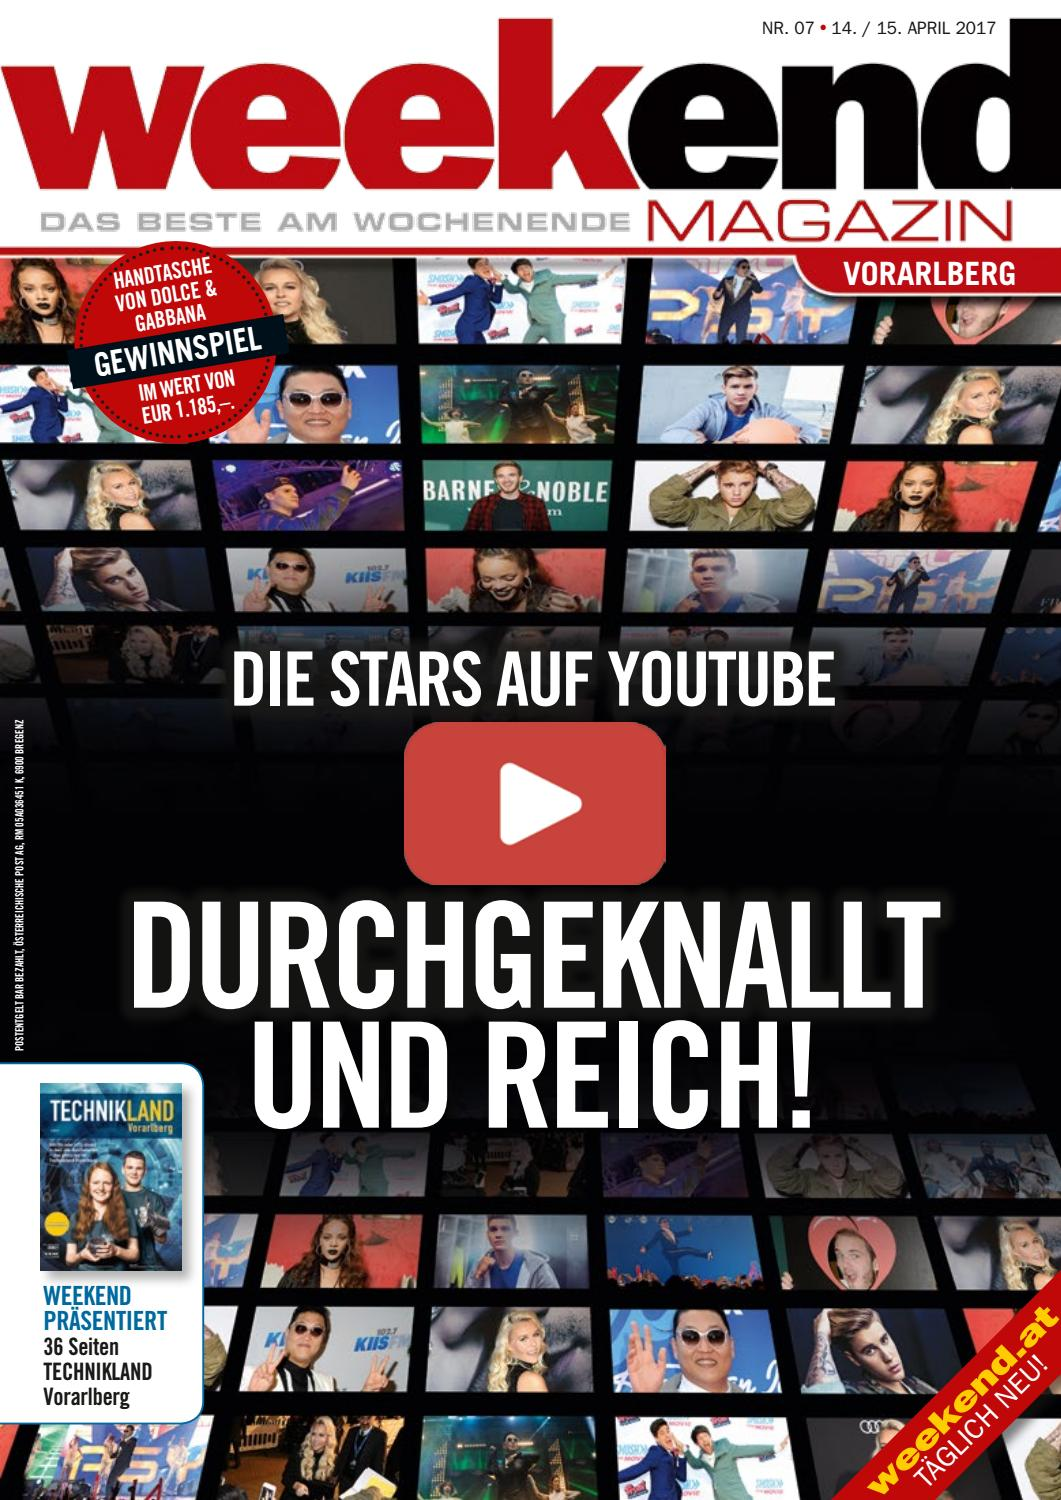 Weekend Magazin Vorarlberg 2017 Kw 15 By Weekend Magazin Vorarlberg Issuu